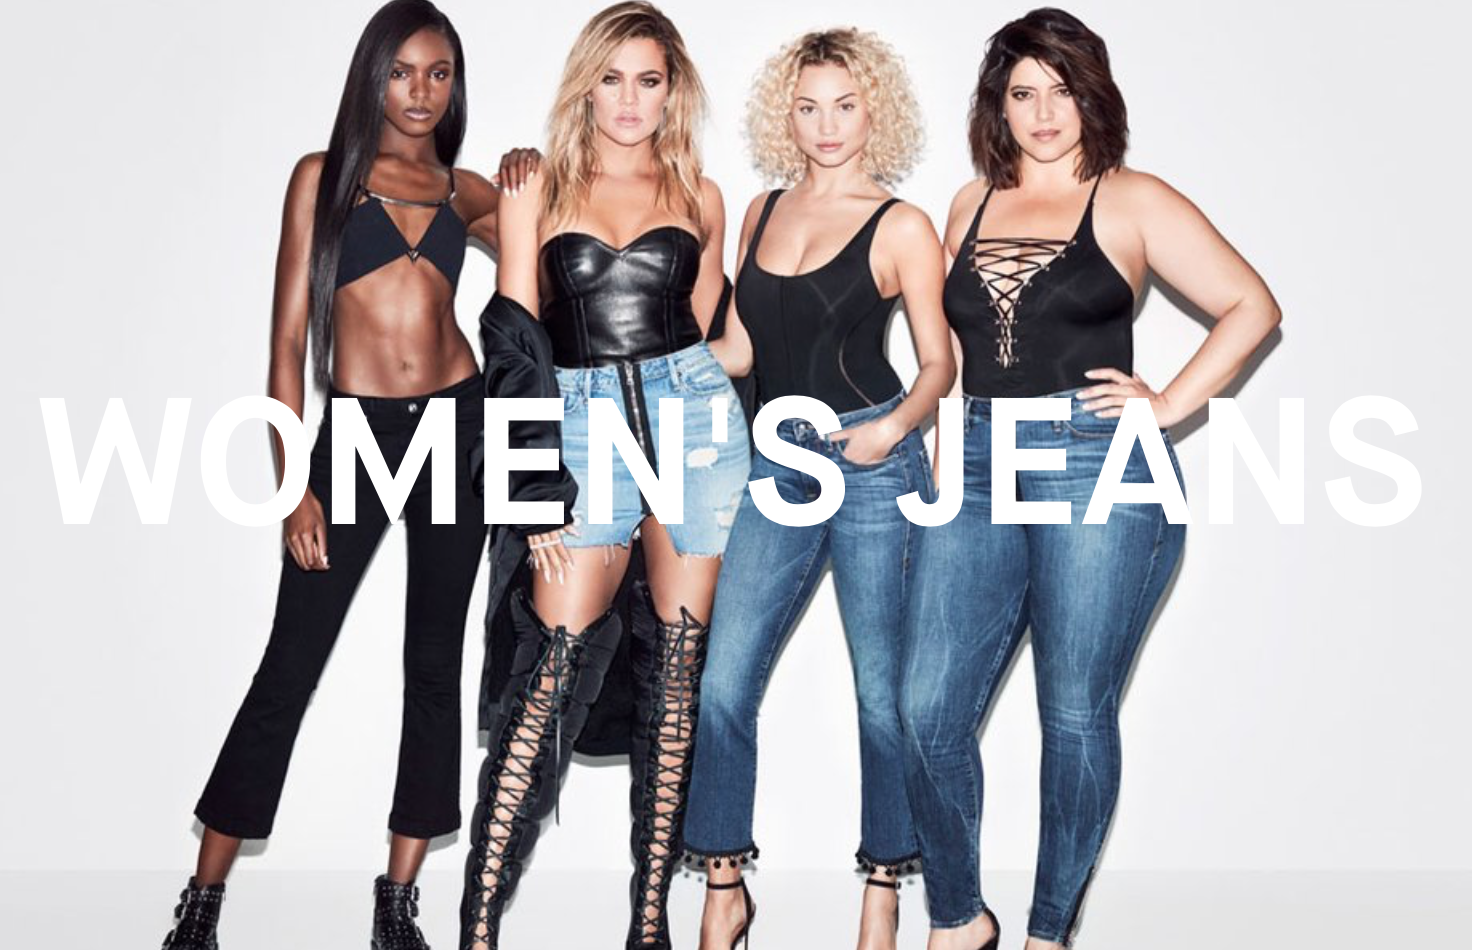 Good American's  Women's Jeans campaign featuring models of all sizes